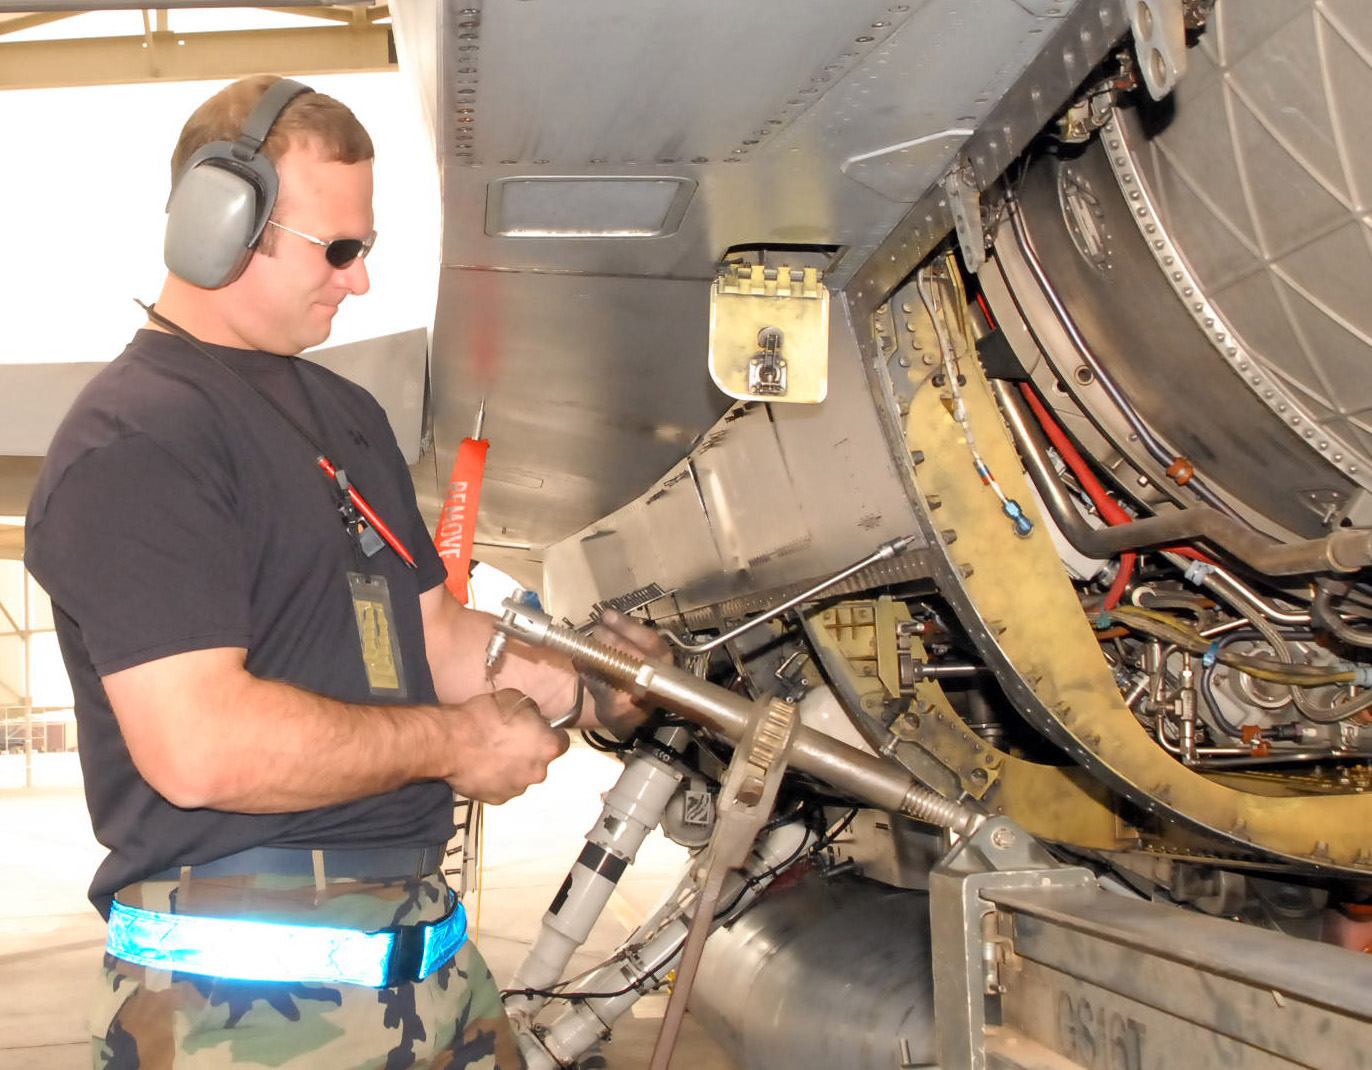 Why we pull engines > Luke Air Force Base > Article Display F Aircraft Wiring Harness on